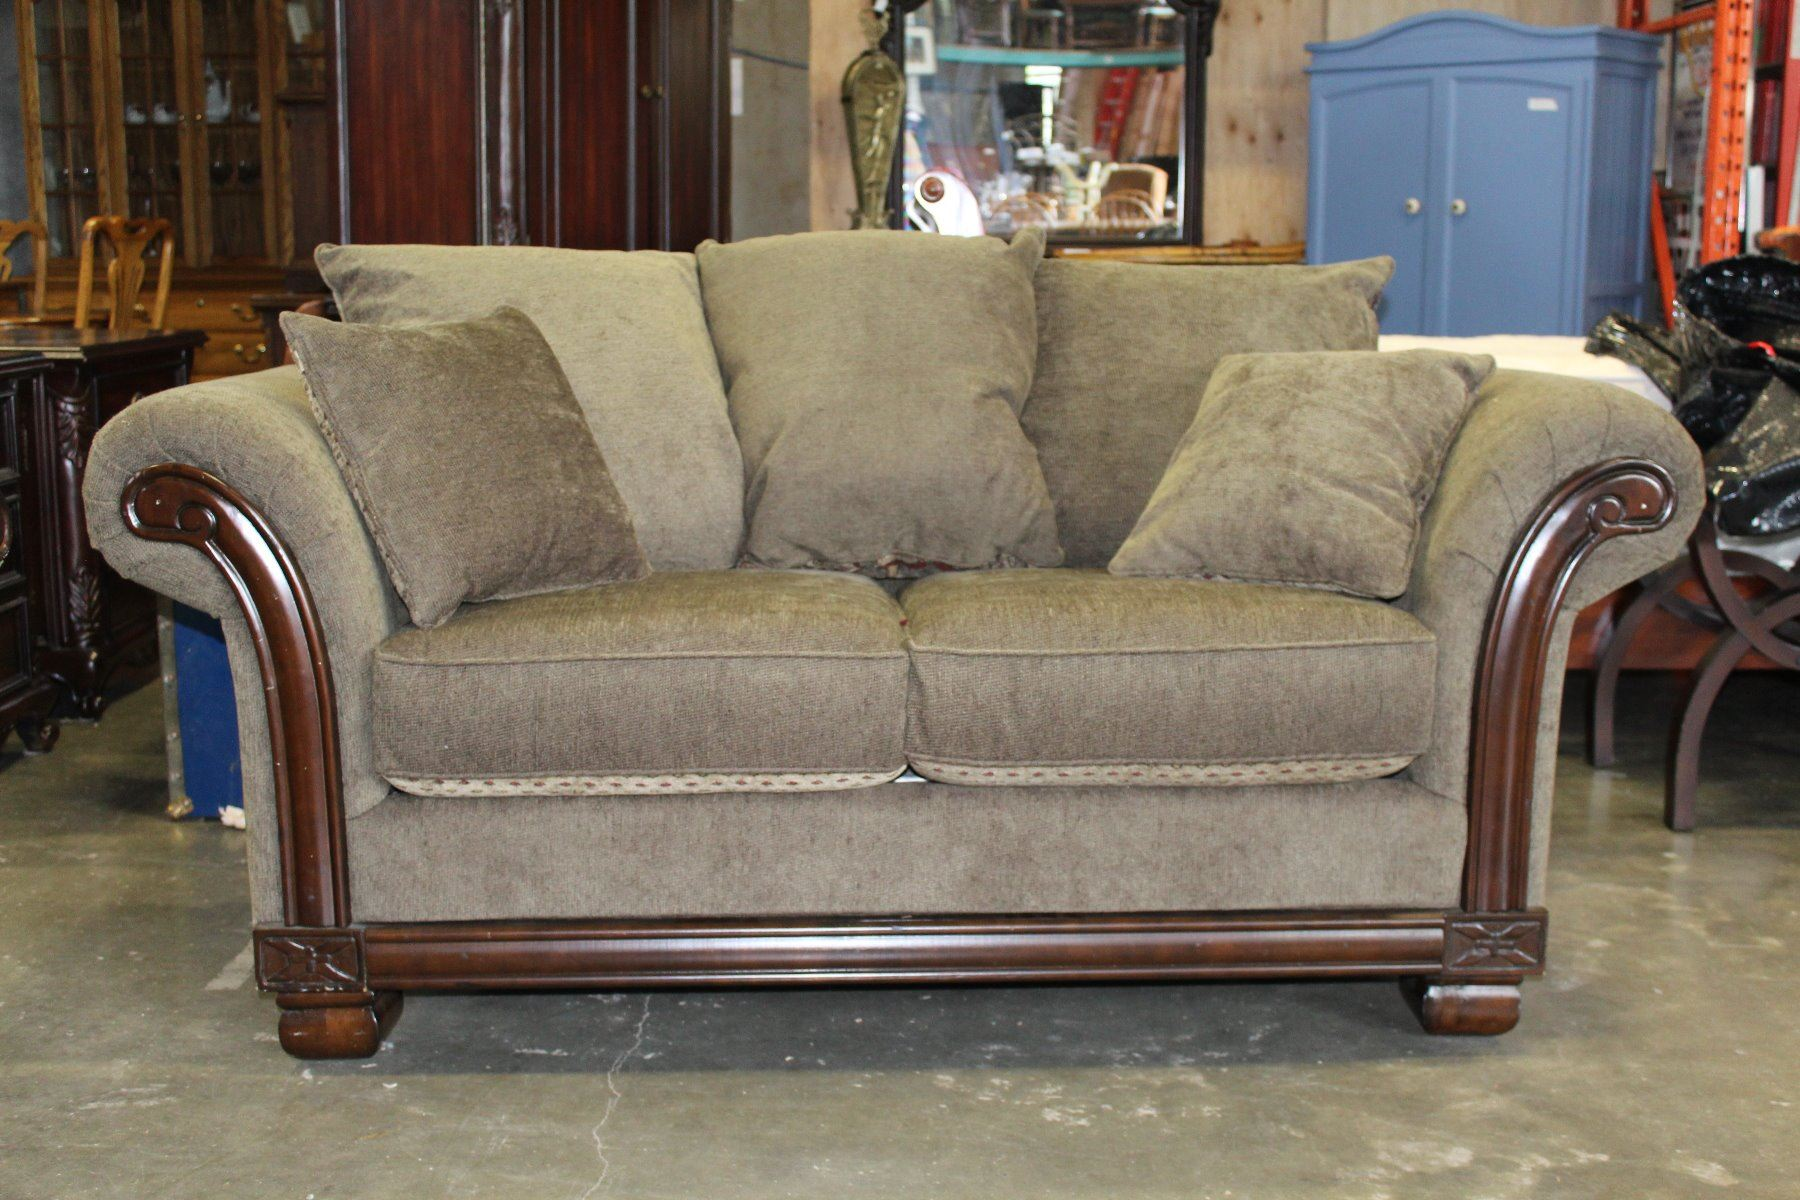 Upolstered Rolled Arm Designer Sofa And Loveseat And Lots Of Matching Throw Pillows